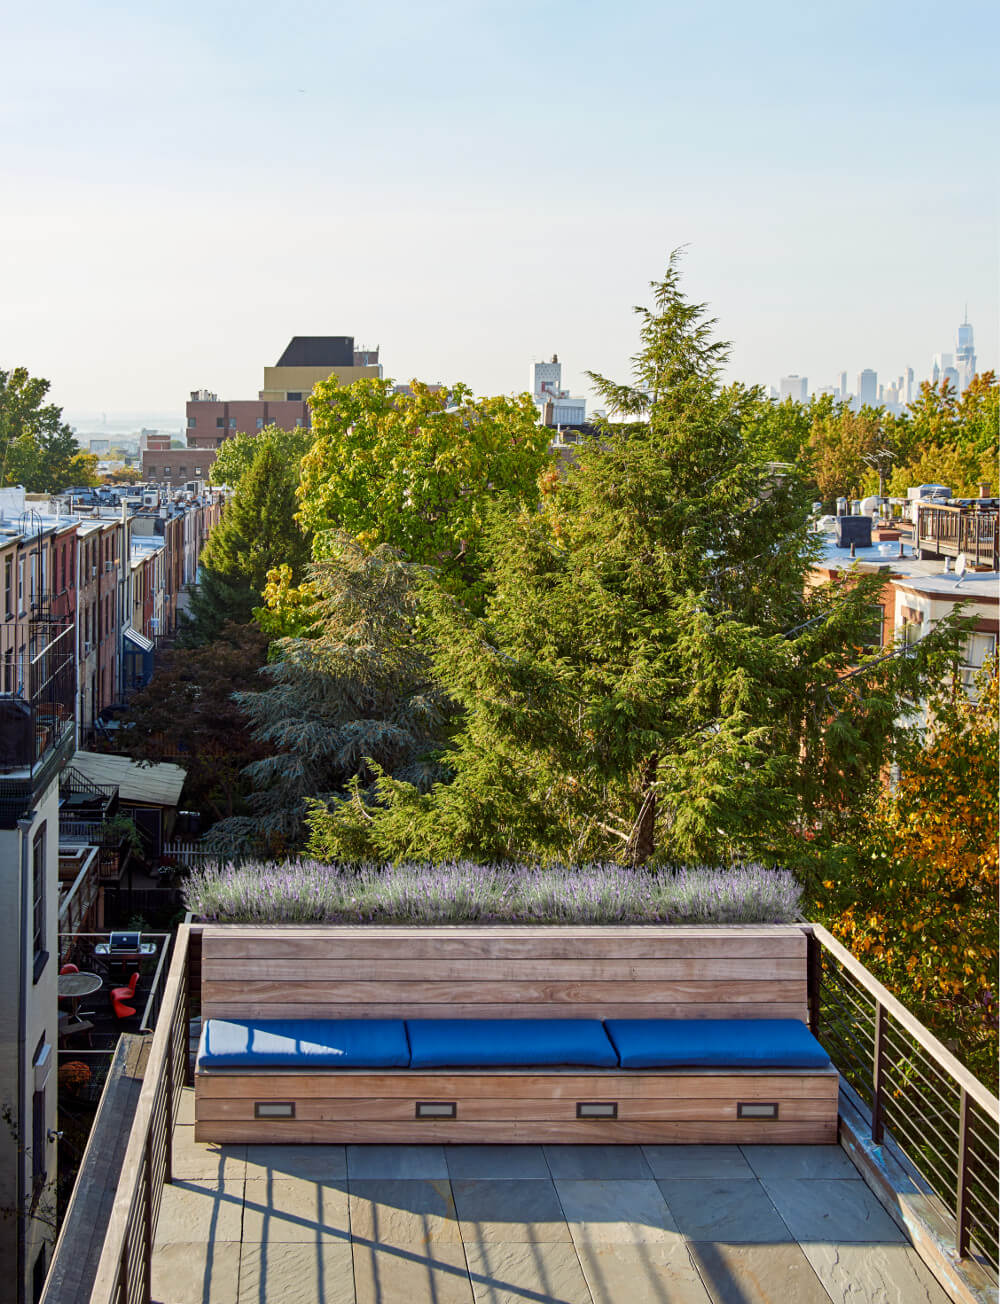 The bluestone roof deck has an ipe storage bench with built-in planter.